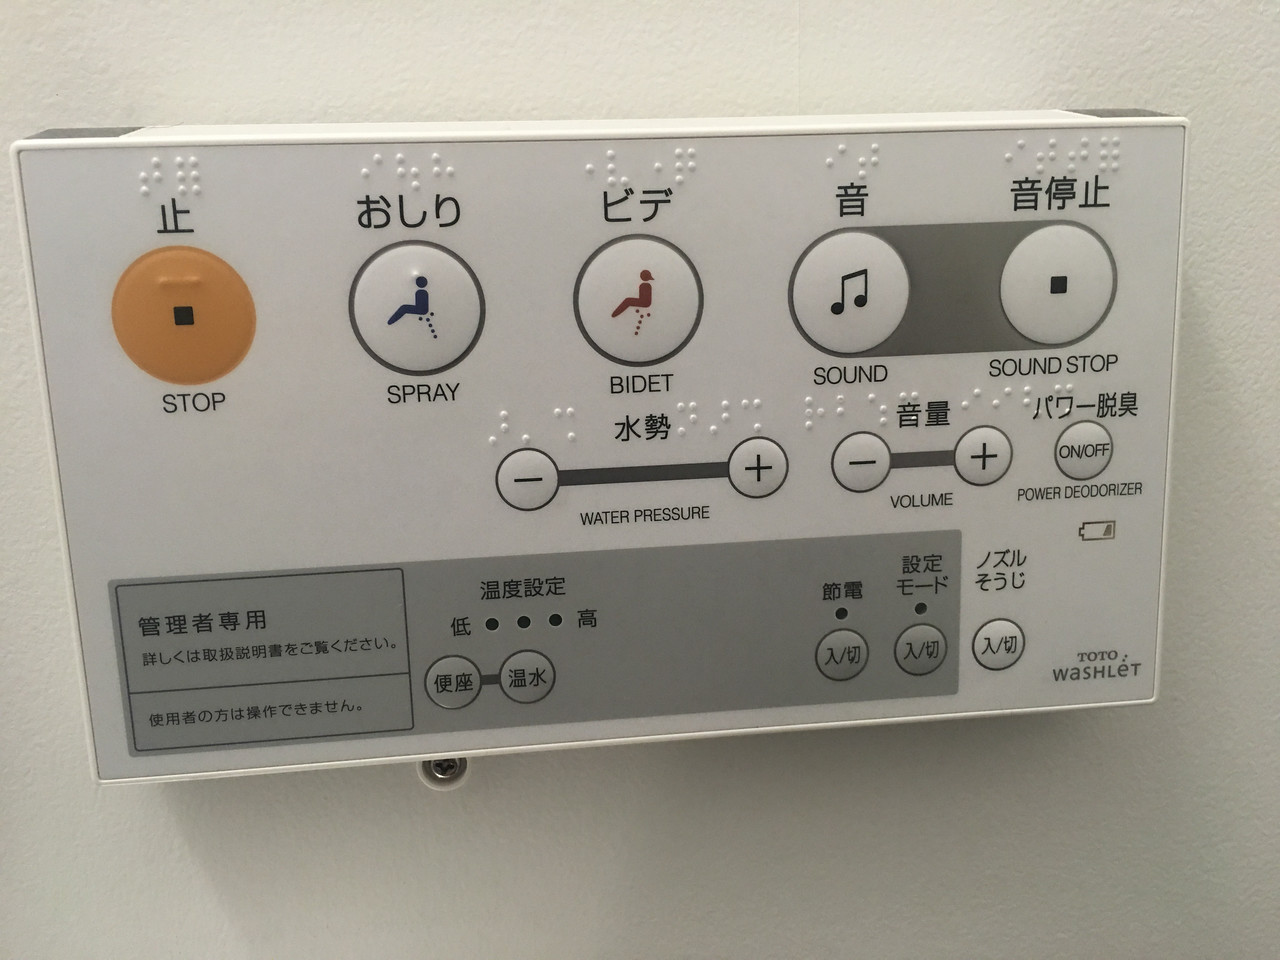 Control Panel for the Toilet